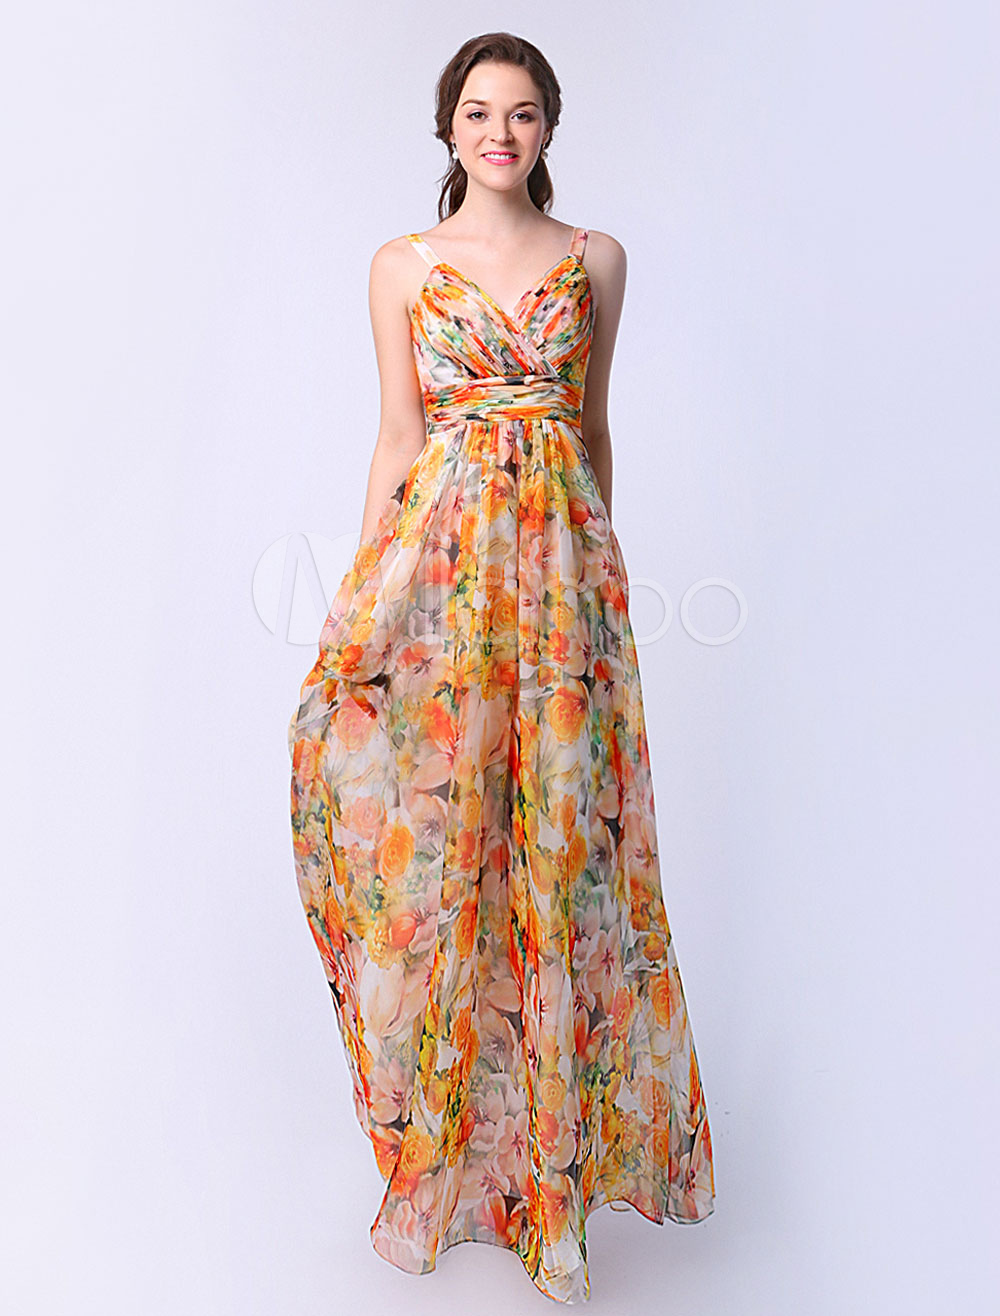 Milanoo / A-line Flower Print Chiffon Prom Dress with Sweetheart Neck Ruched